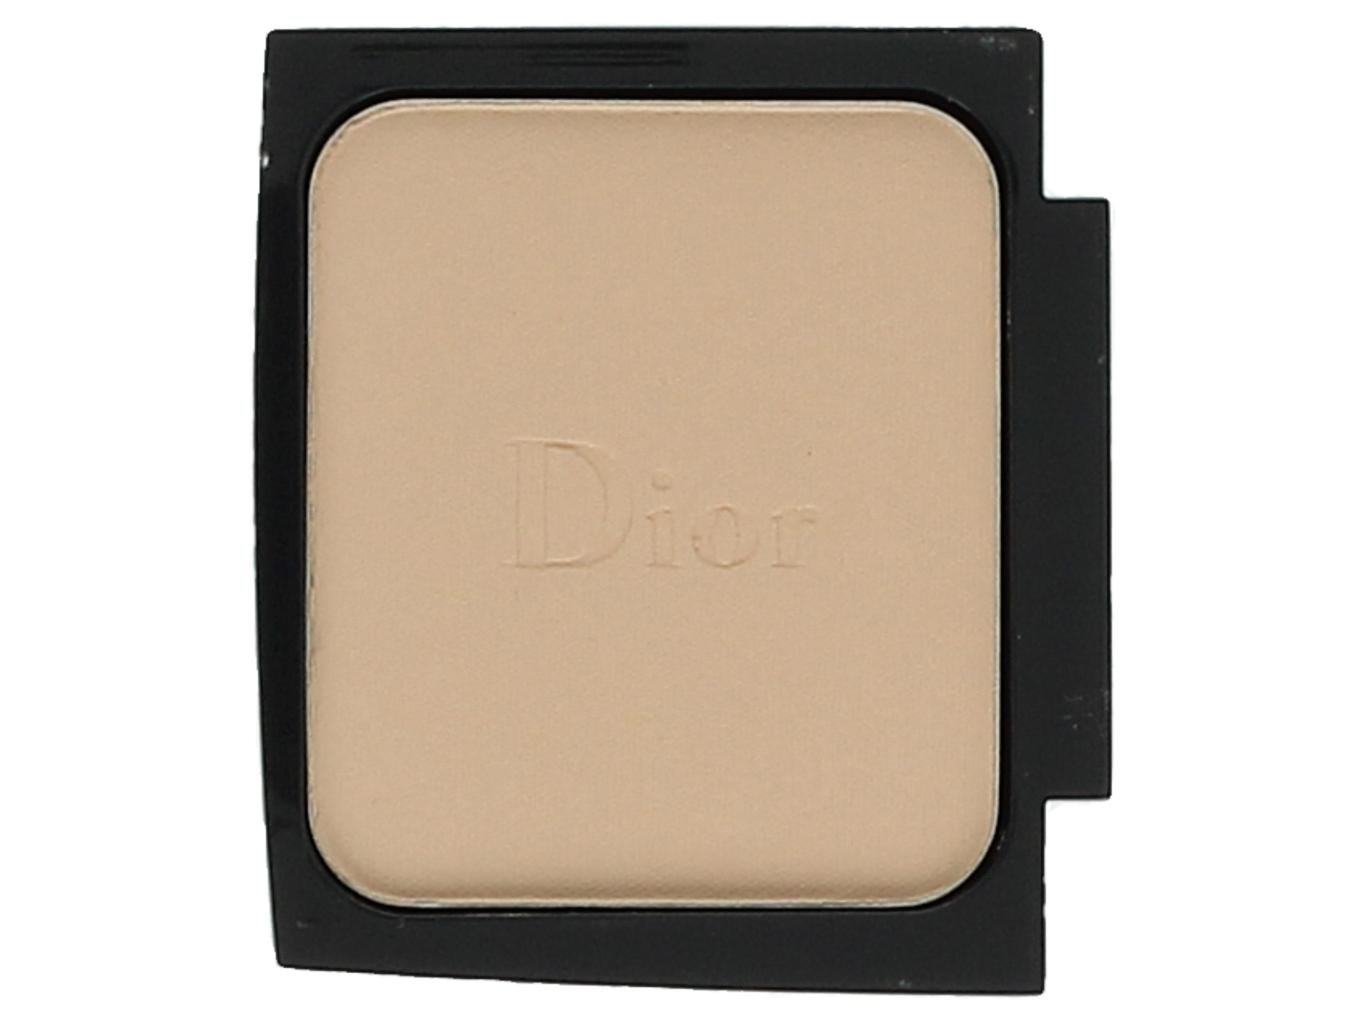 Make Up-Christian Dior - Powder - Diorskin Forever Compact Flawless Perfection Spf 25-Diorskin Forever Compact Flawless Perfection Fusion Wear Makeup Spf 25 - #010 Ivory-10g/0.35oz